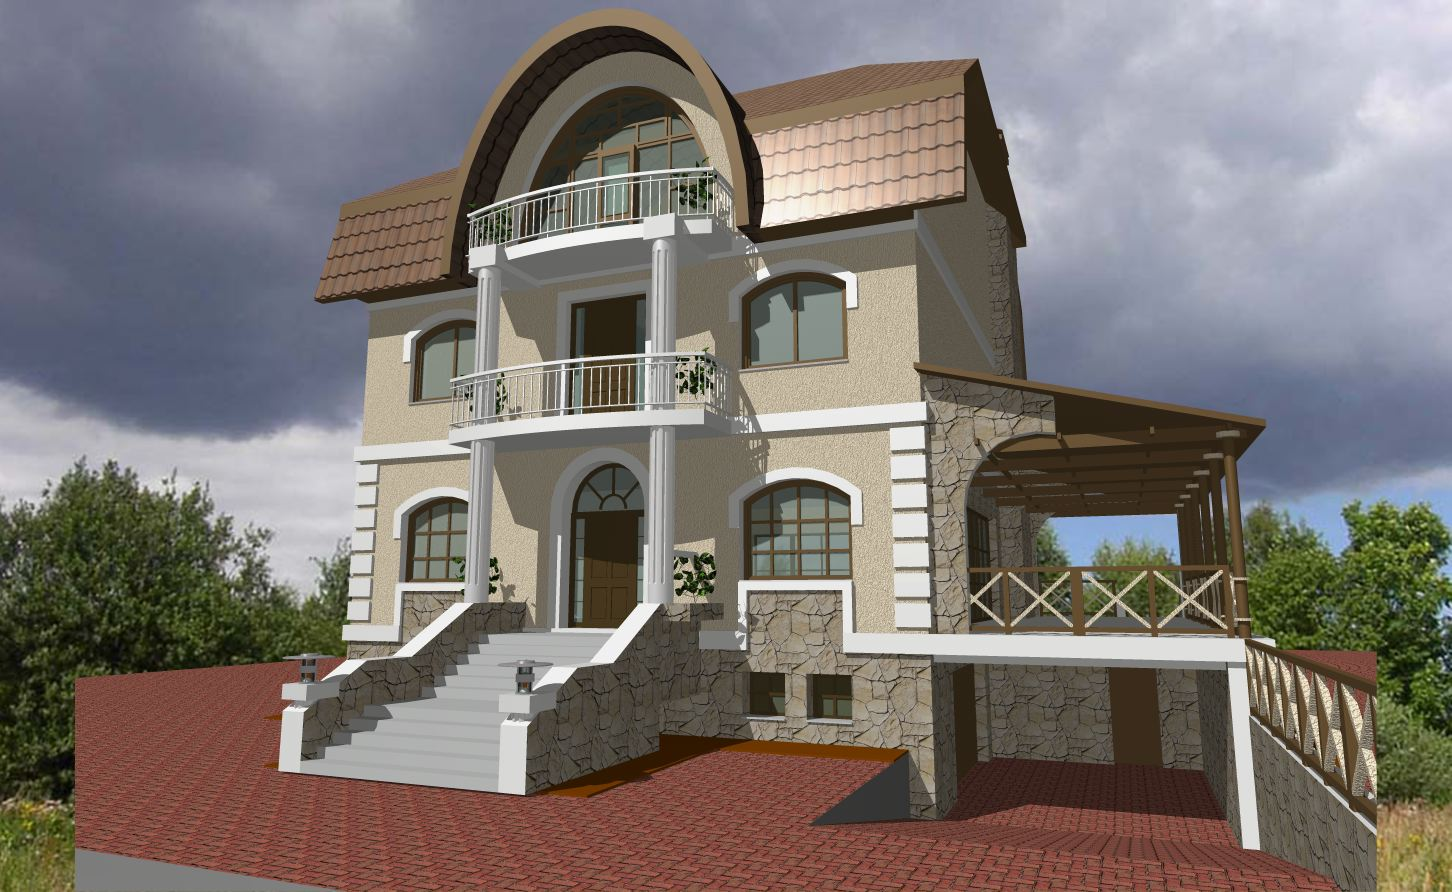 Foundation dezin decor exterior elevations view 39 s for Singlex house design